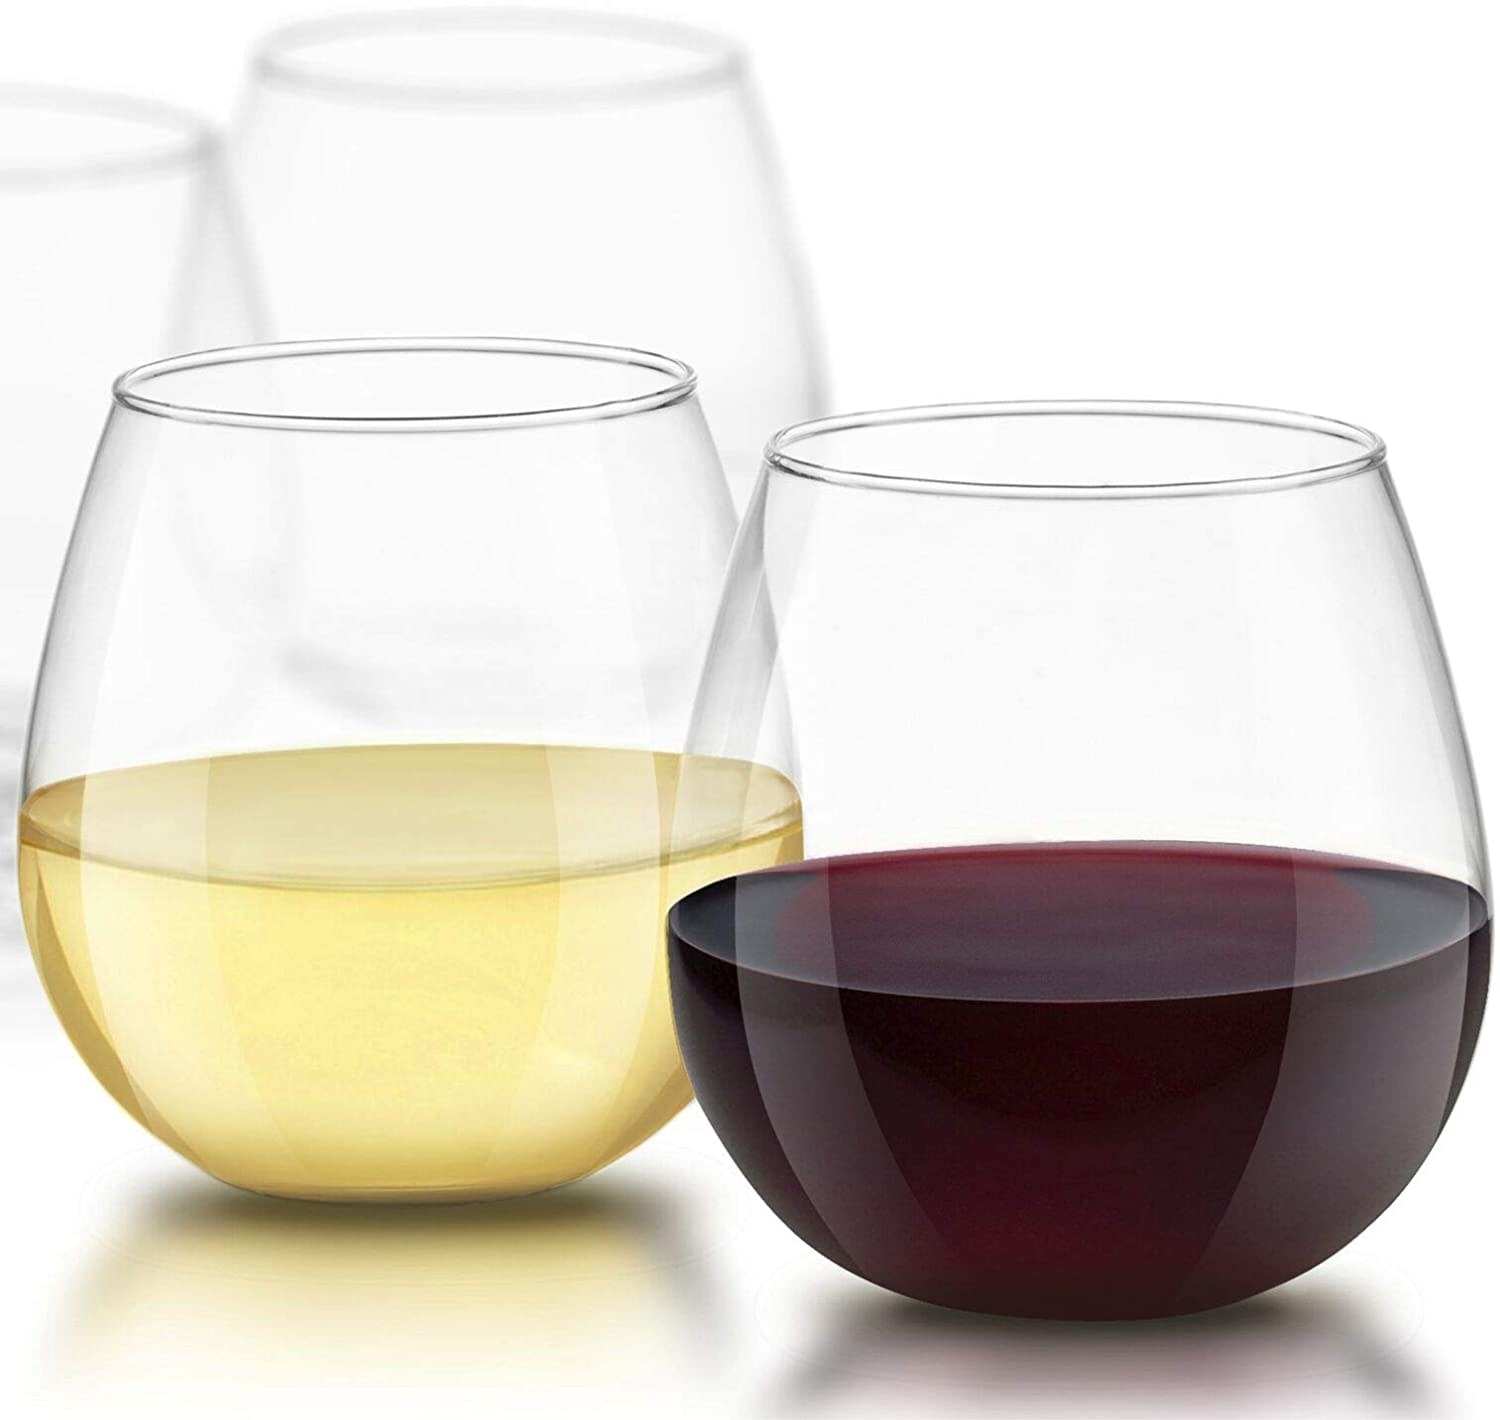 stemless wine glasses with white and red wine in them